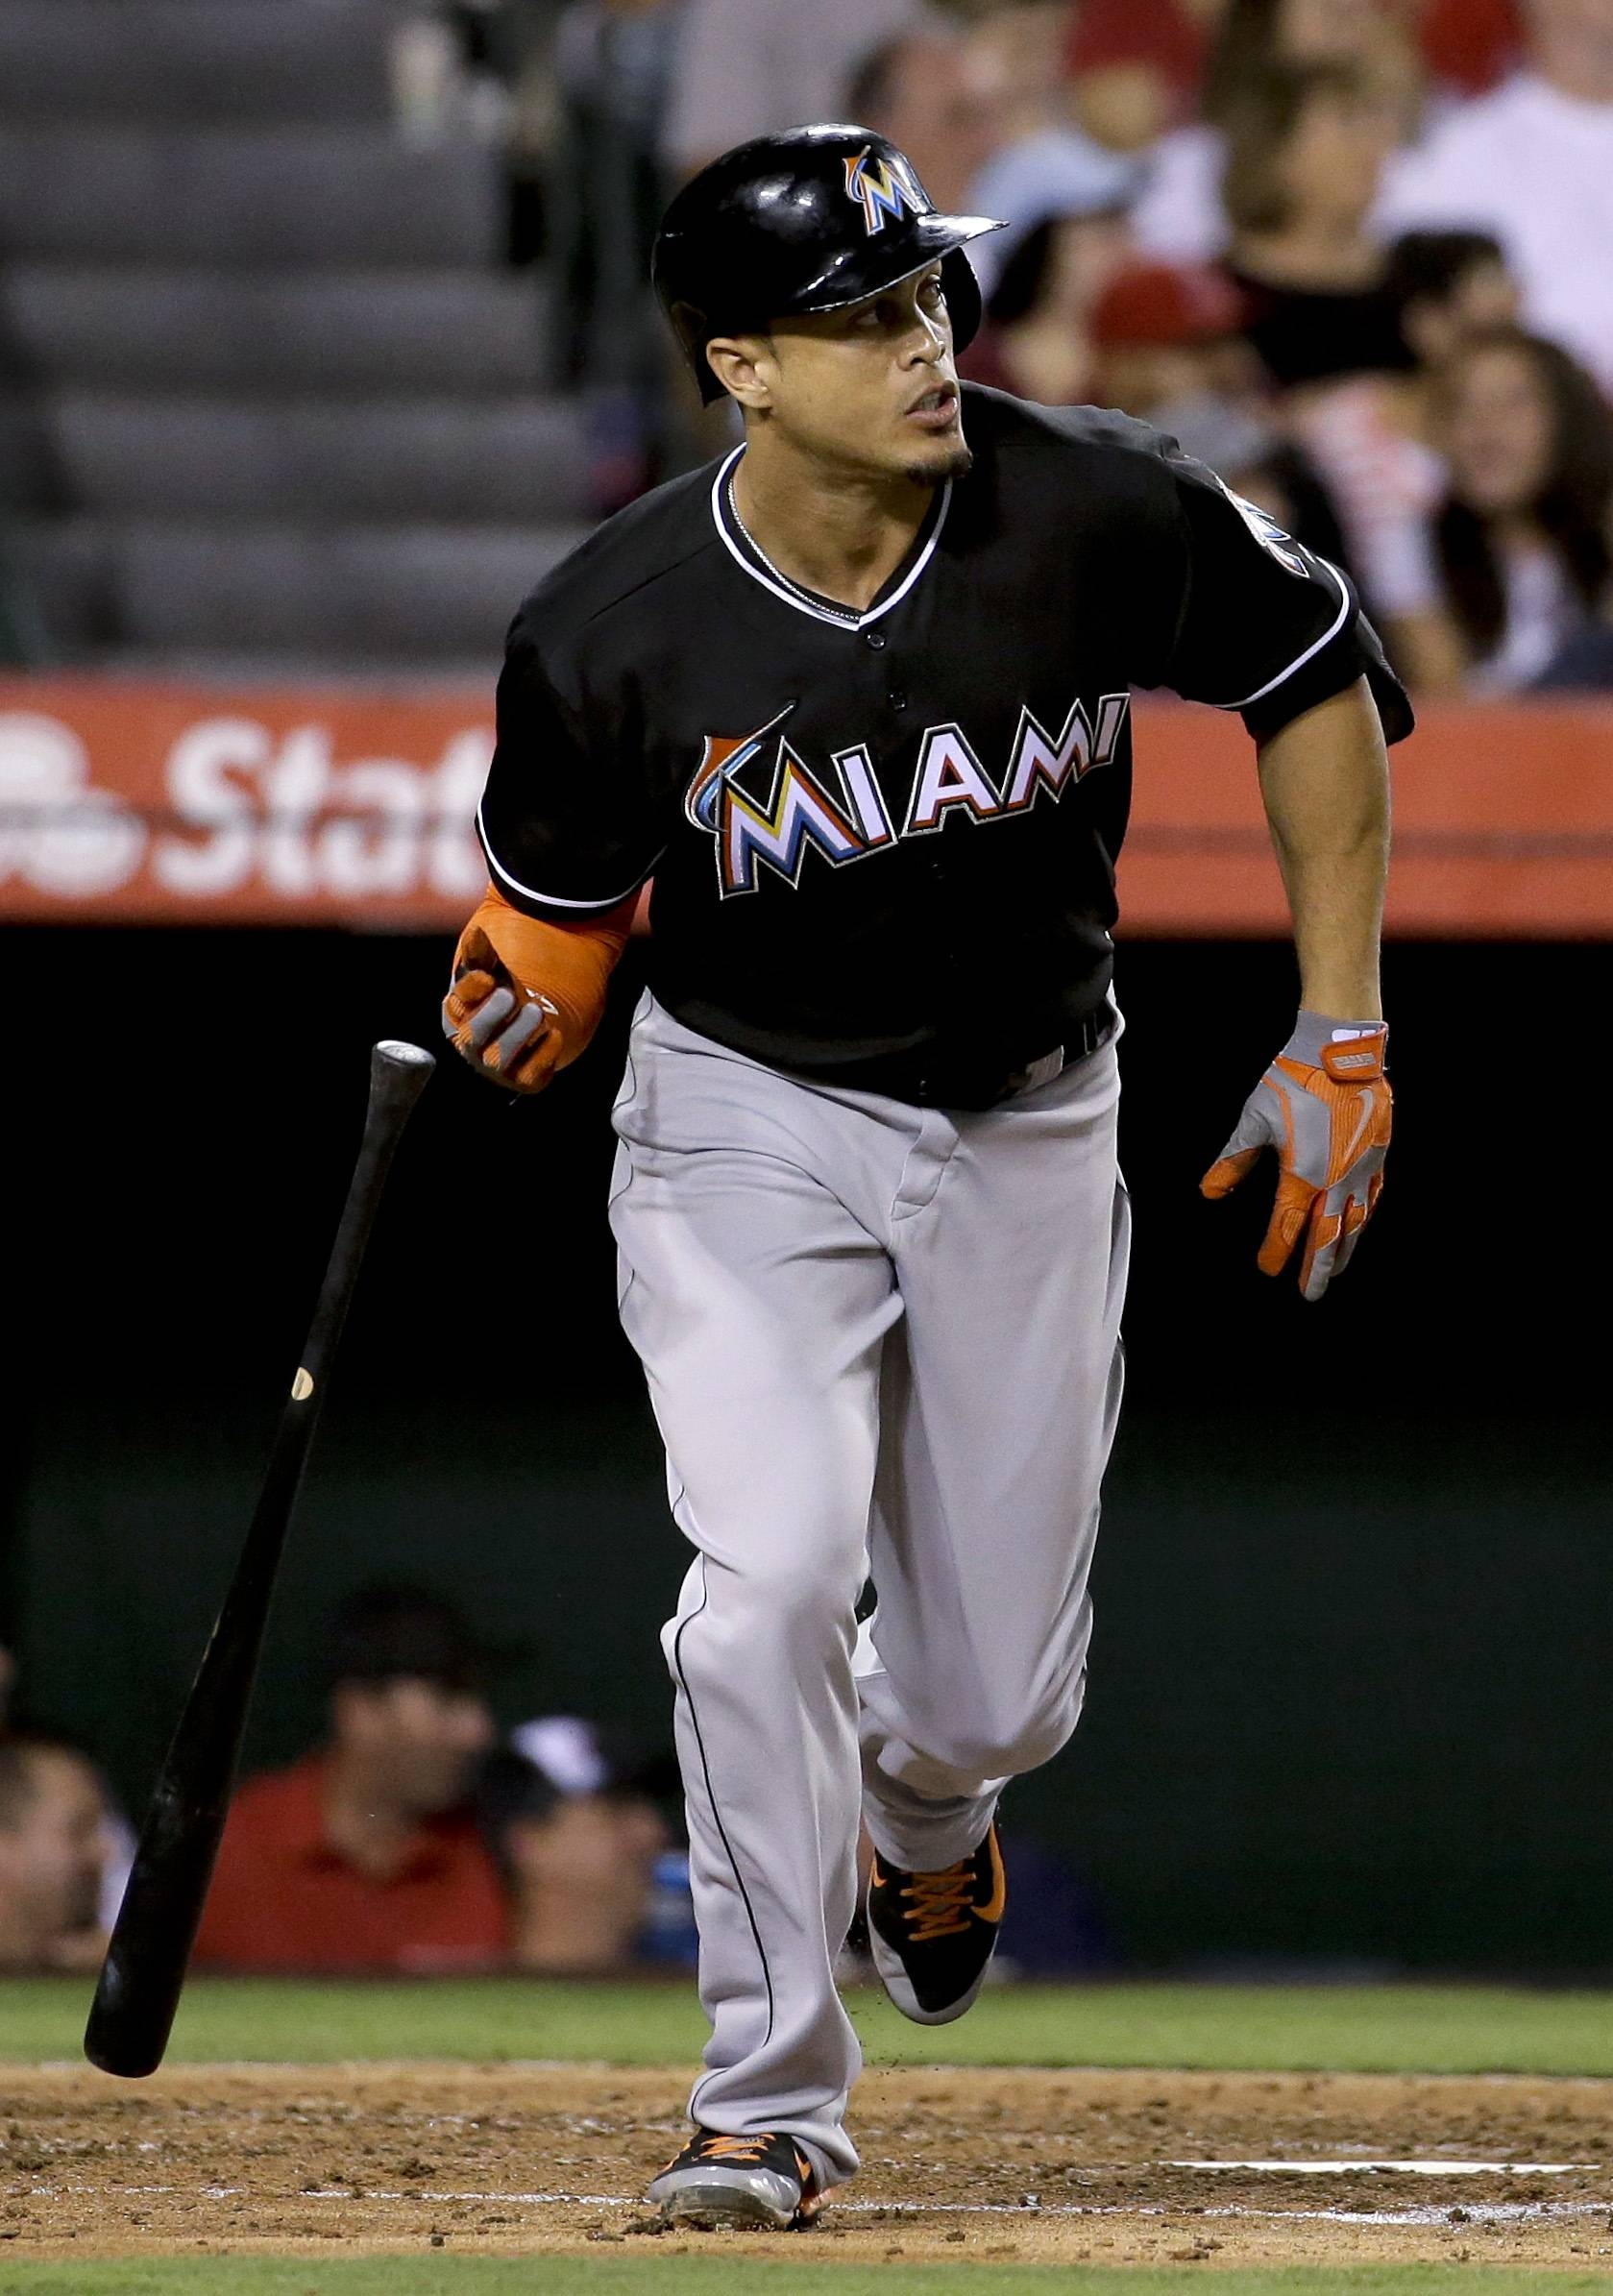 Wouldn't Marlins slugger Giancarlo Stanton, watching a 3-run homer sail out, look good in a young Cubs lineup?